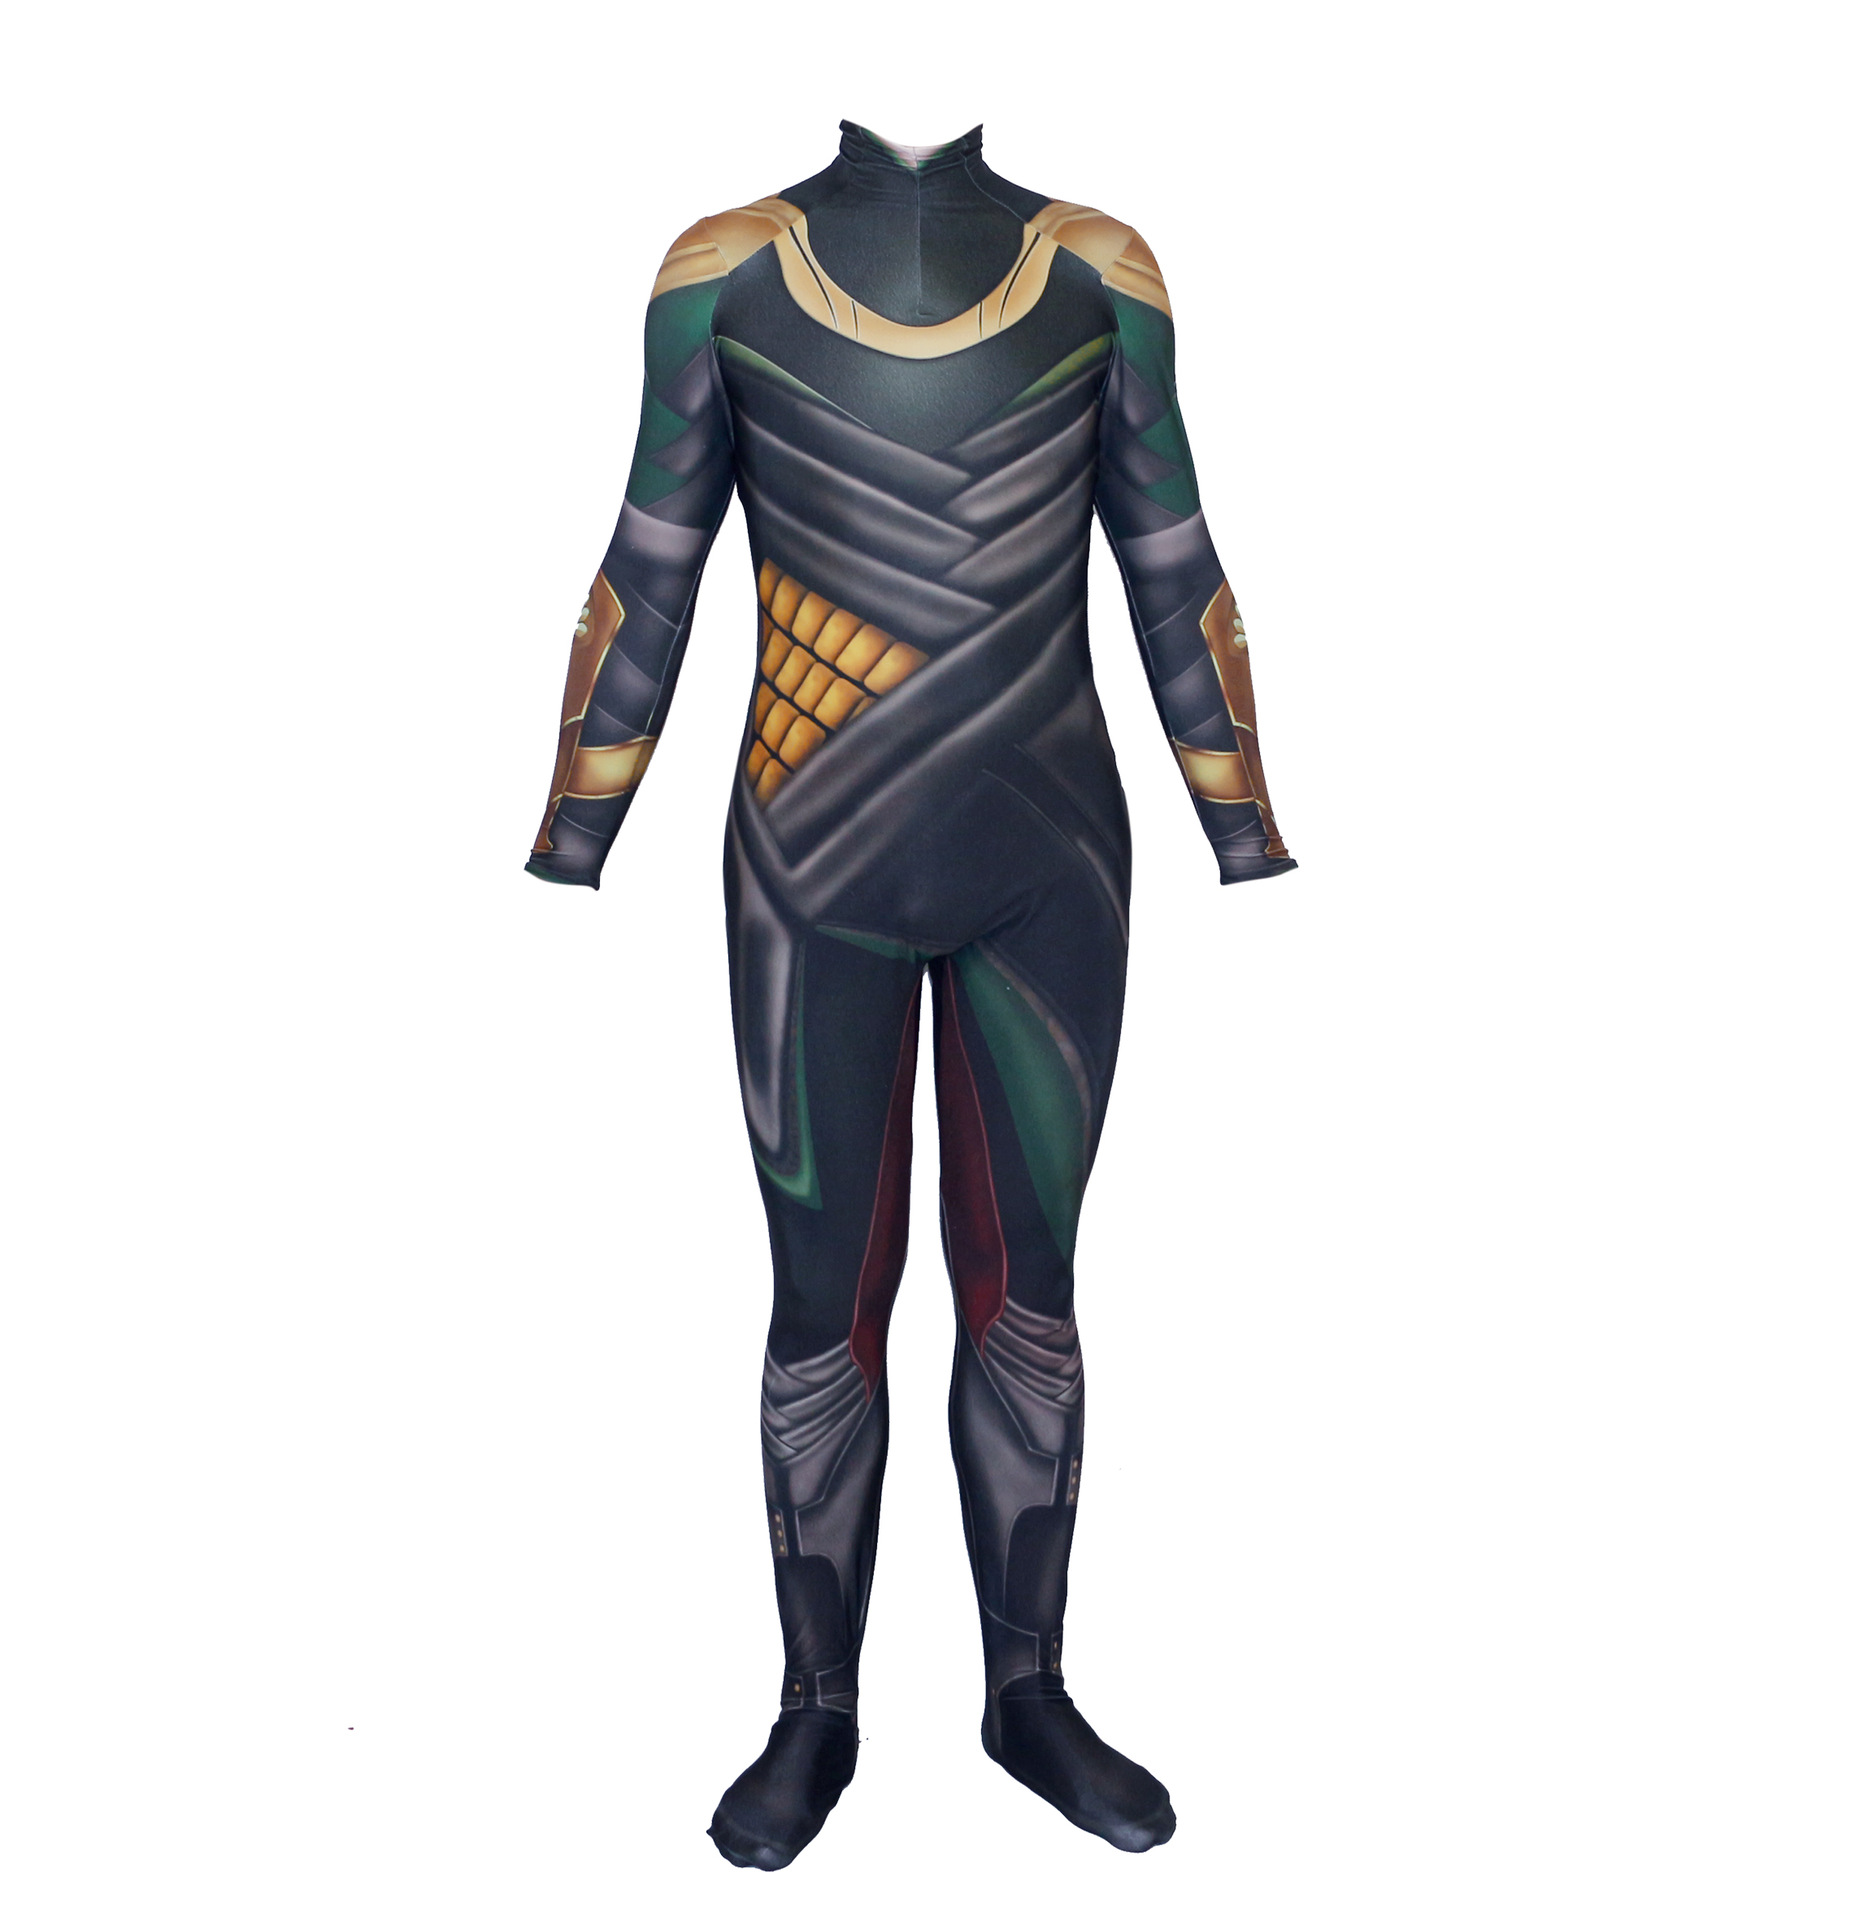 3D Print Out Role Loki Concomitant Tights Cosplay Halloween Costume Thor The Dark World Loki Cosplay Costume Halloween Party